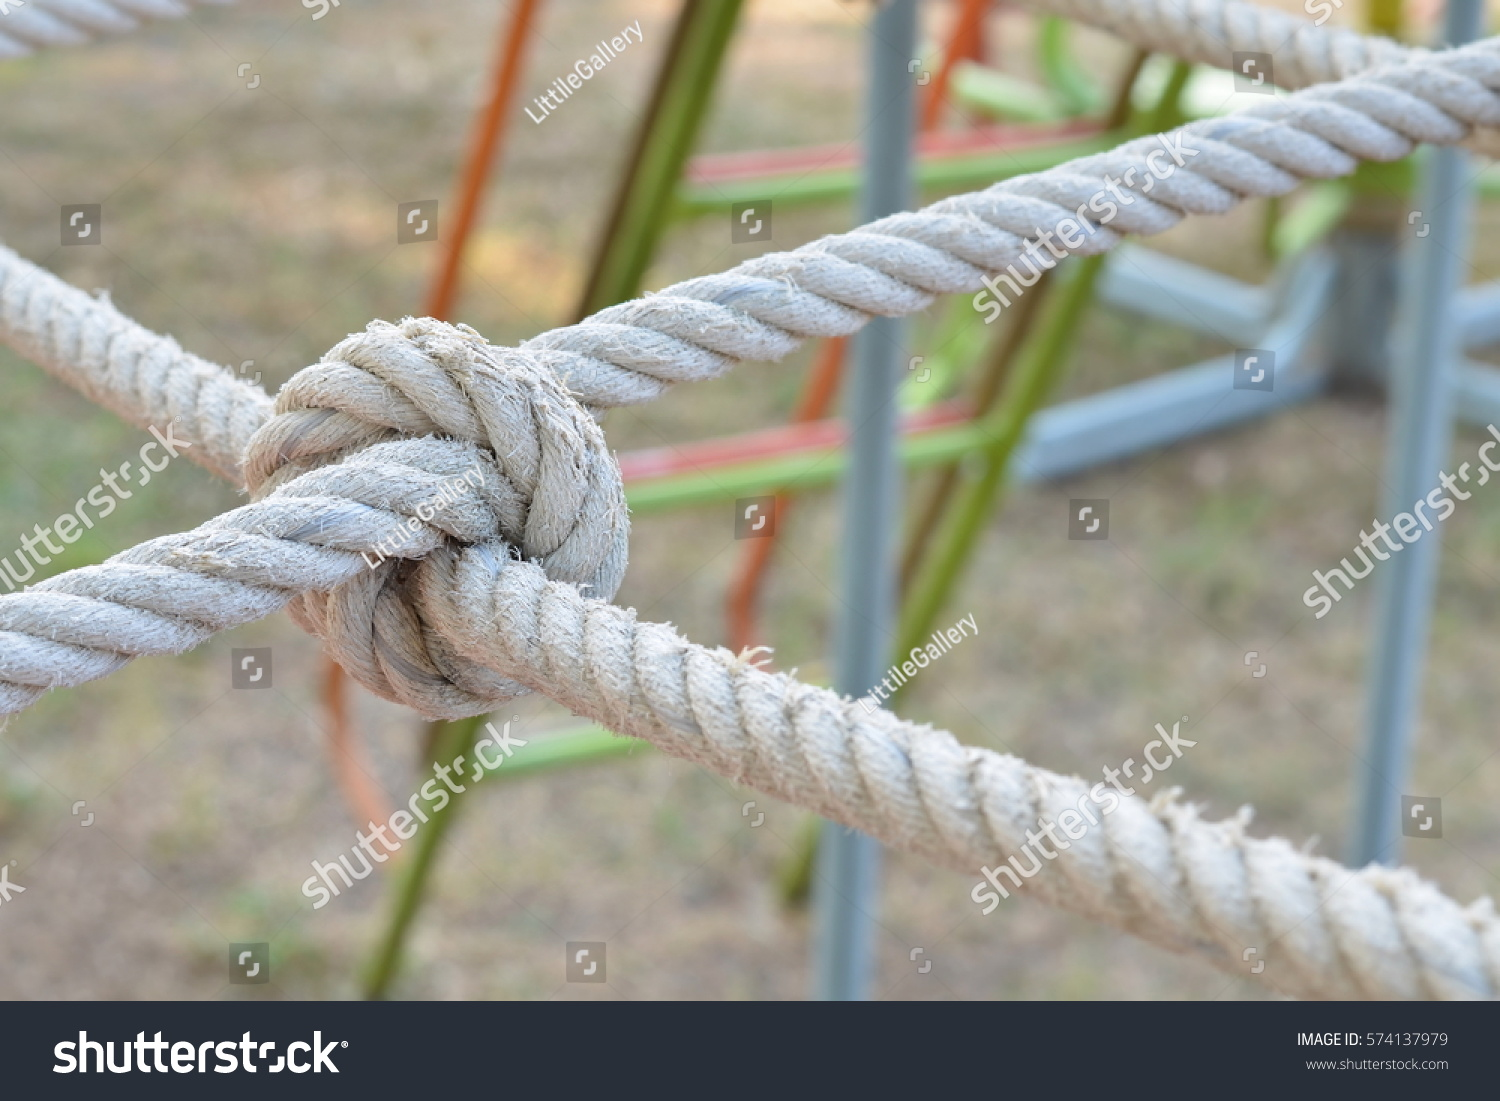 Rope knot line tied together playground stock photo 574137979 rope knot line tied together with playground backgroundas a symbol for trust teamwork or biocorpaavc Choice Image